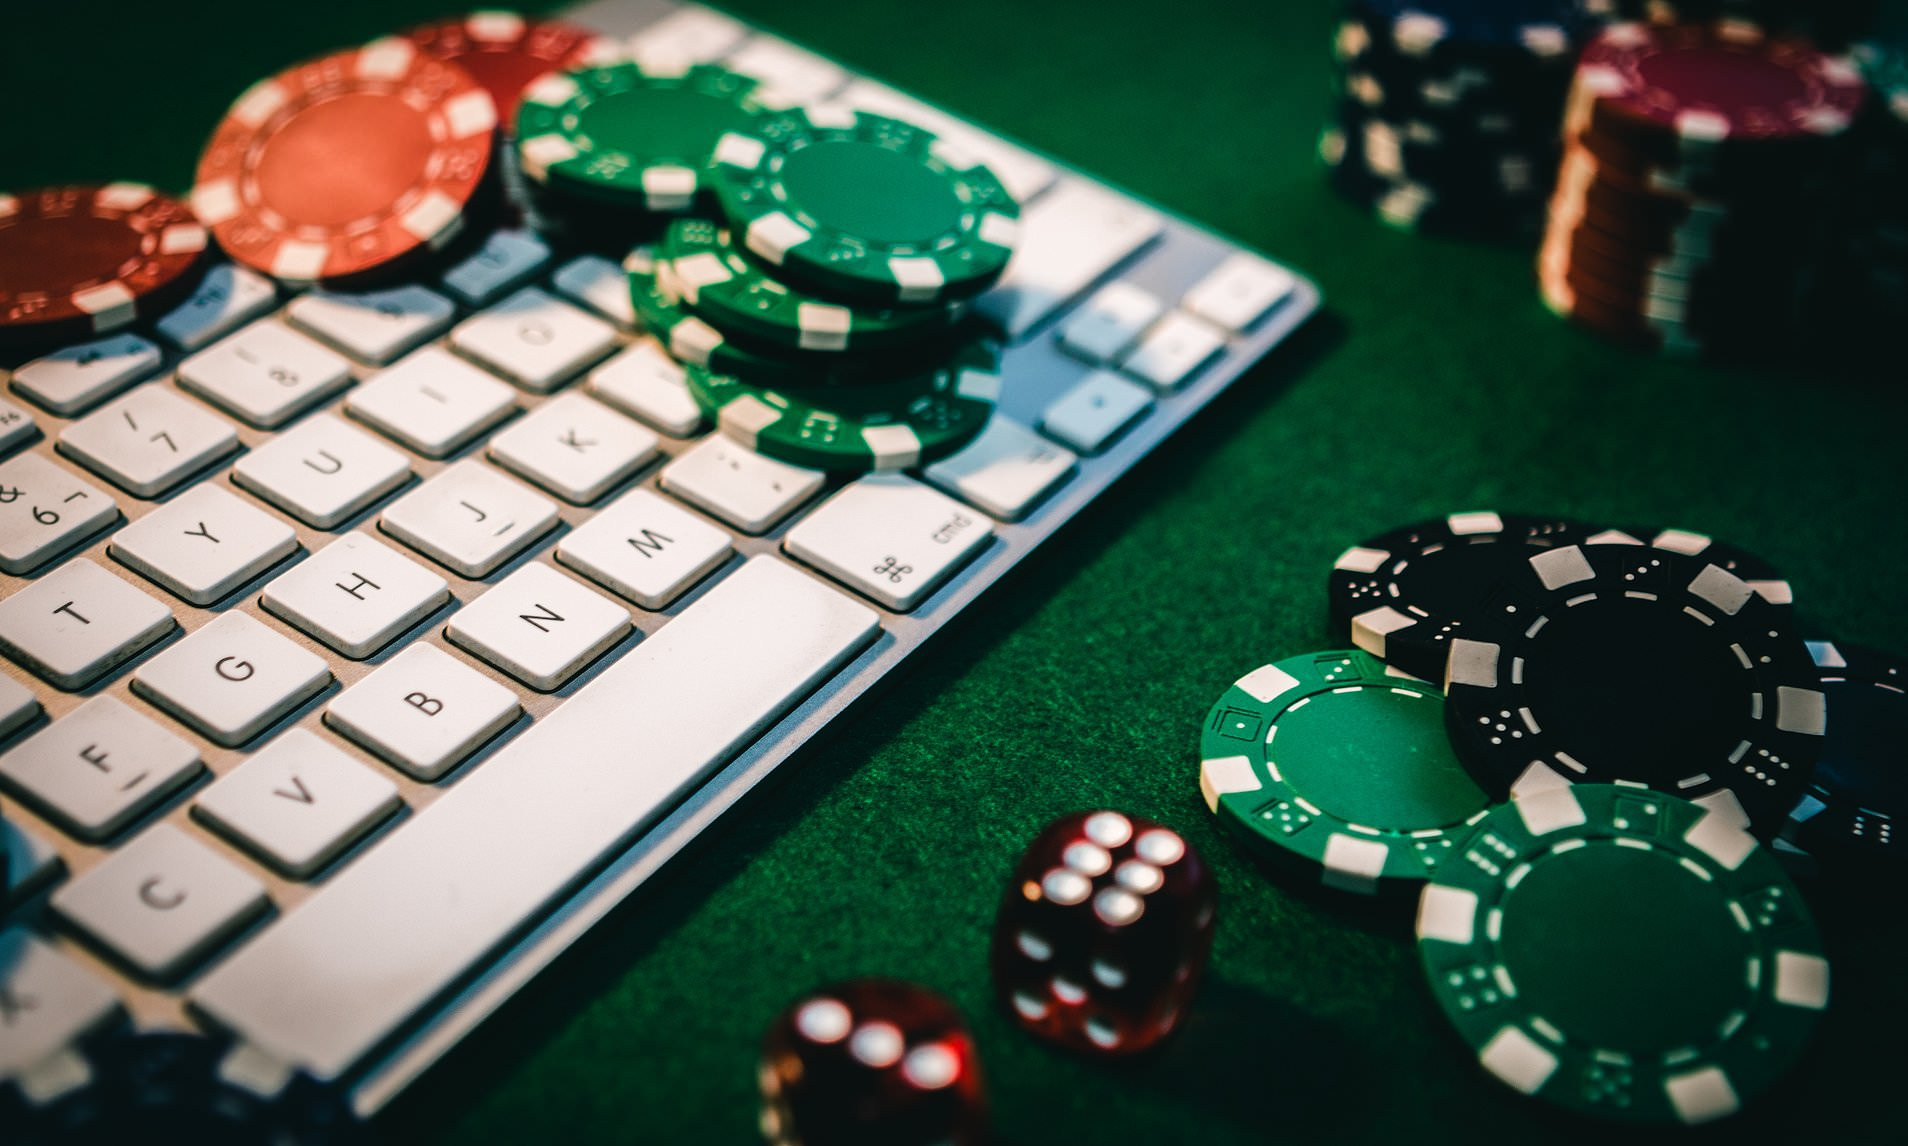 Overview-Of-Online-Poker-Games-That-You-Must-Know.jpg (1908×1146)